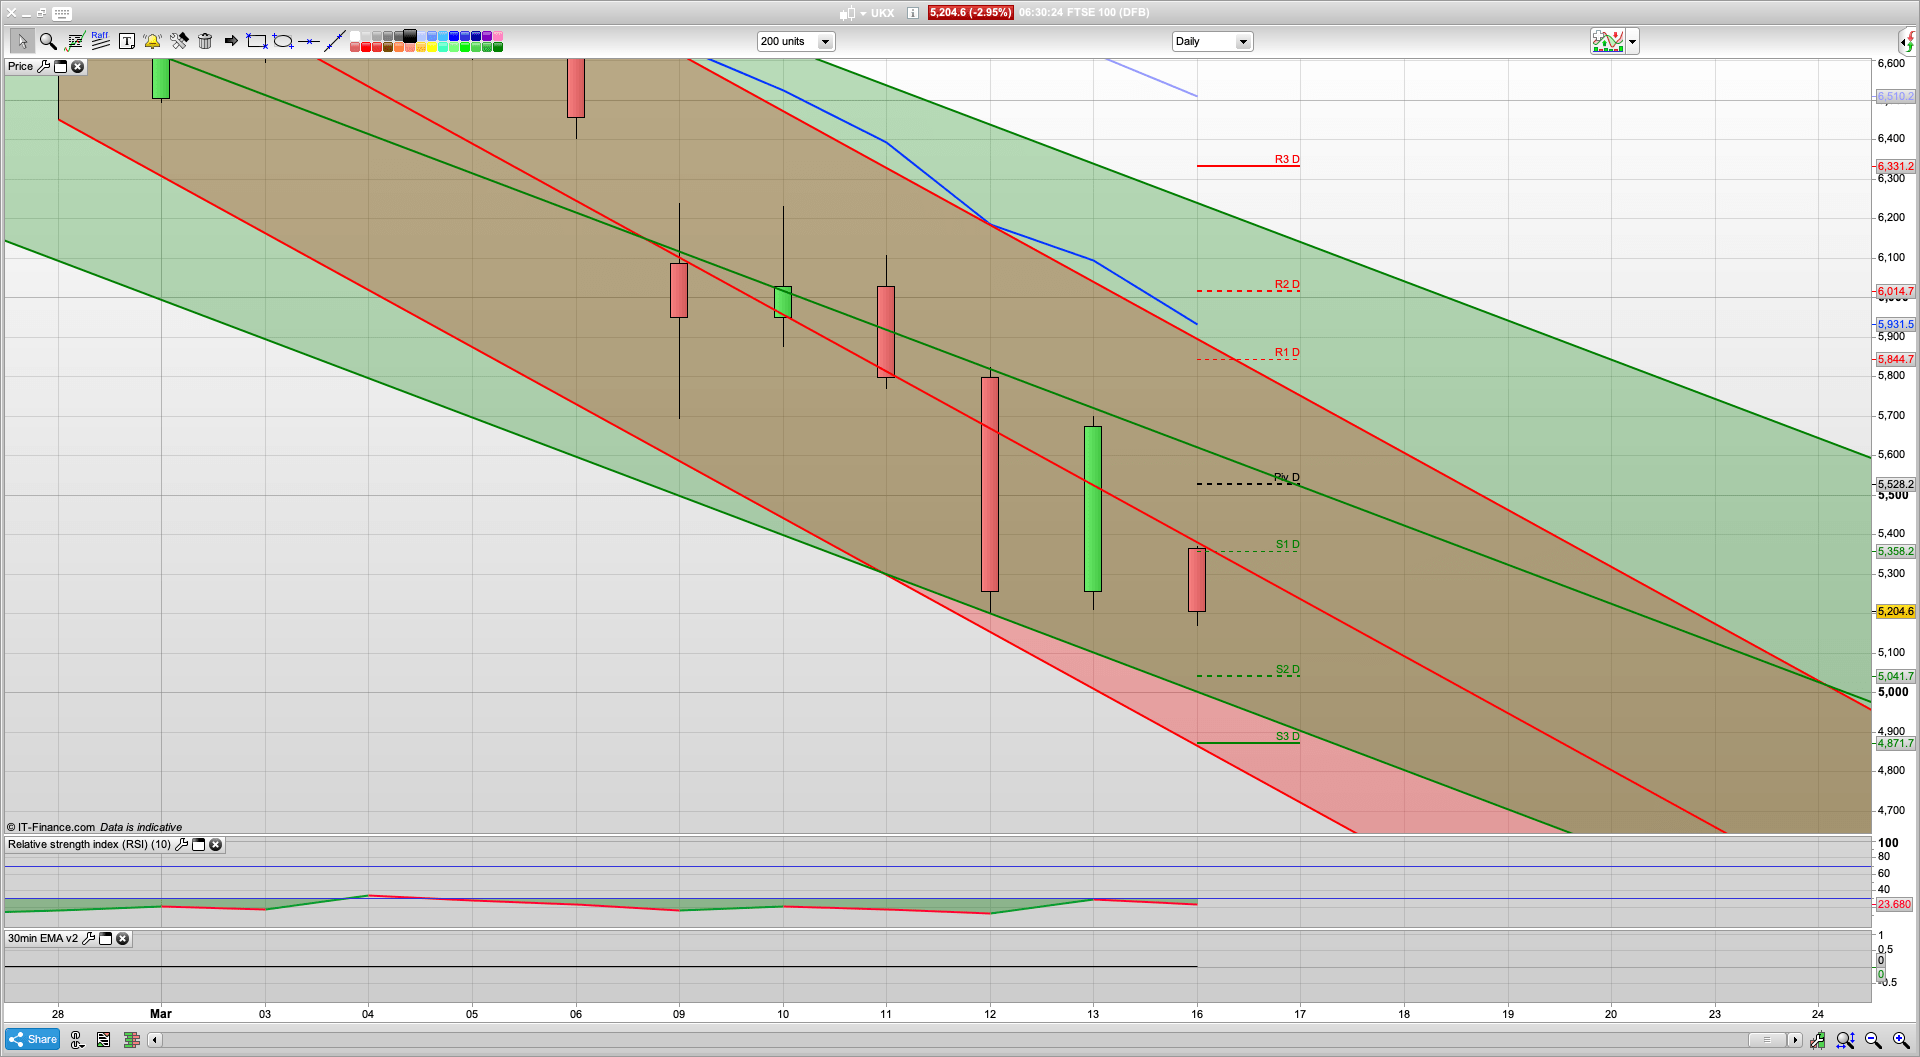 Fed cuts rate again with more QE | FTSE breaks below 5000 | 4950 4850 4800 support | 5350 resistance